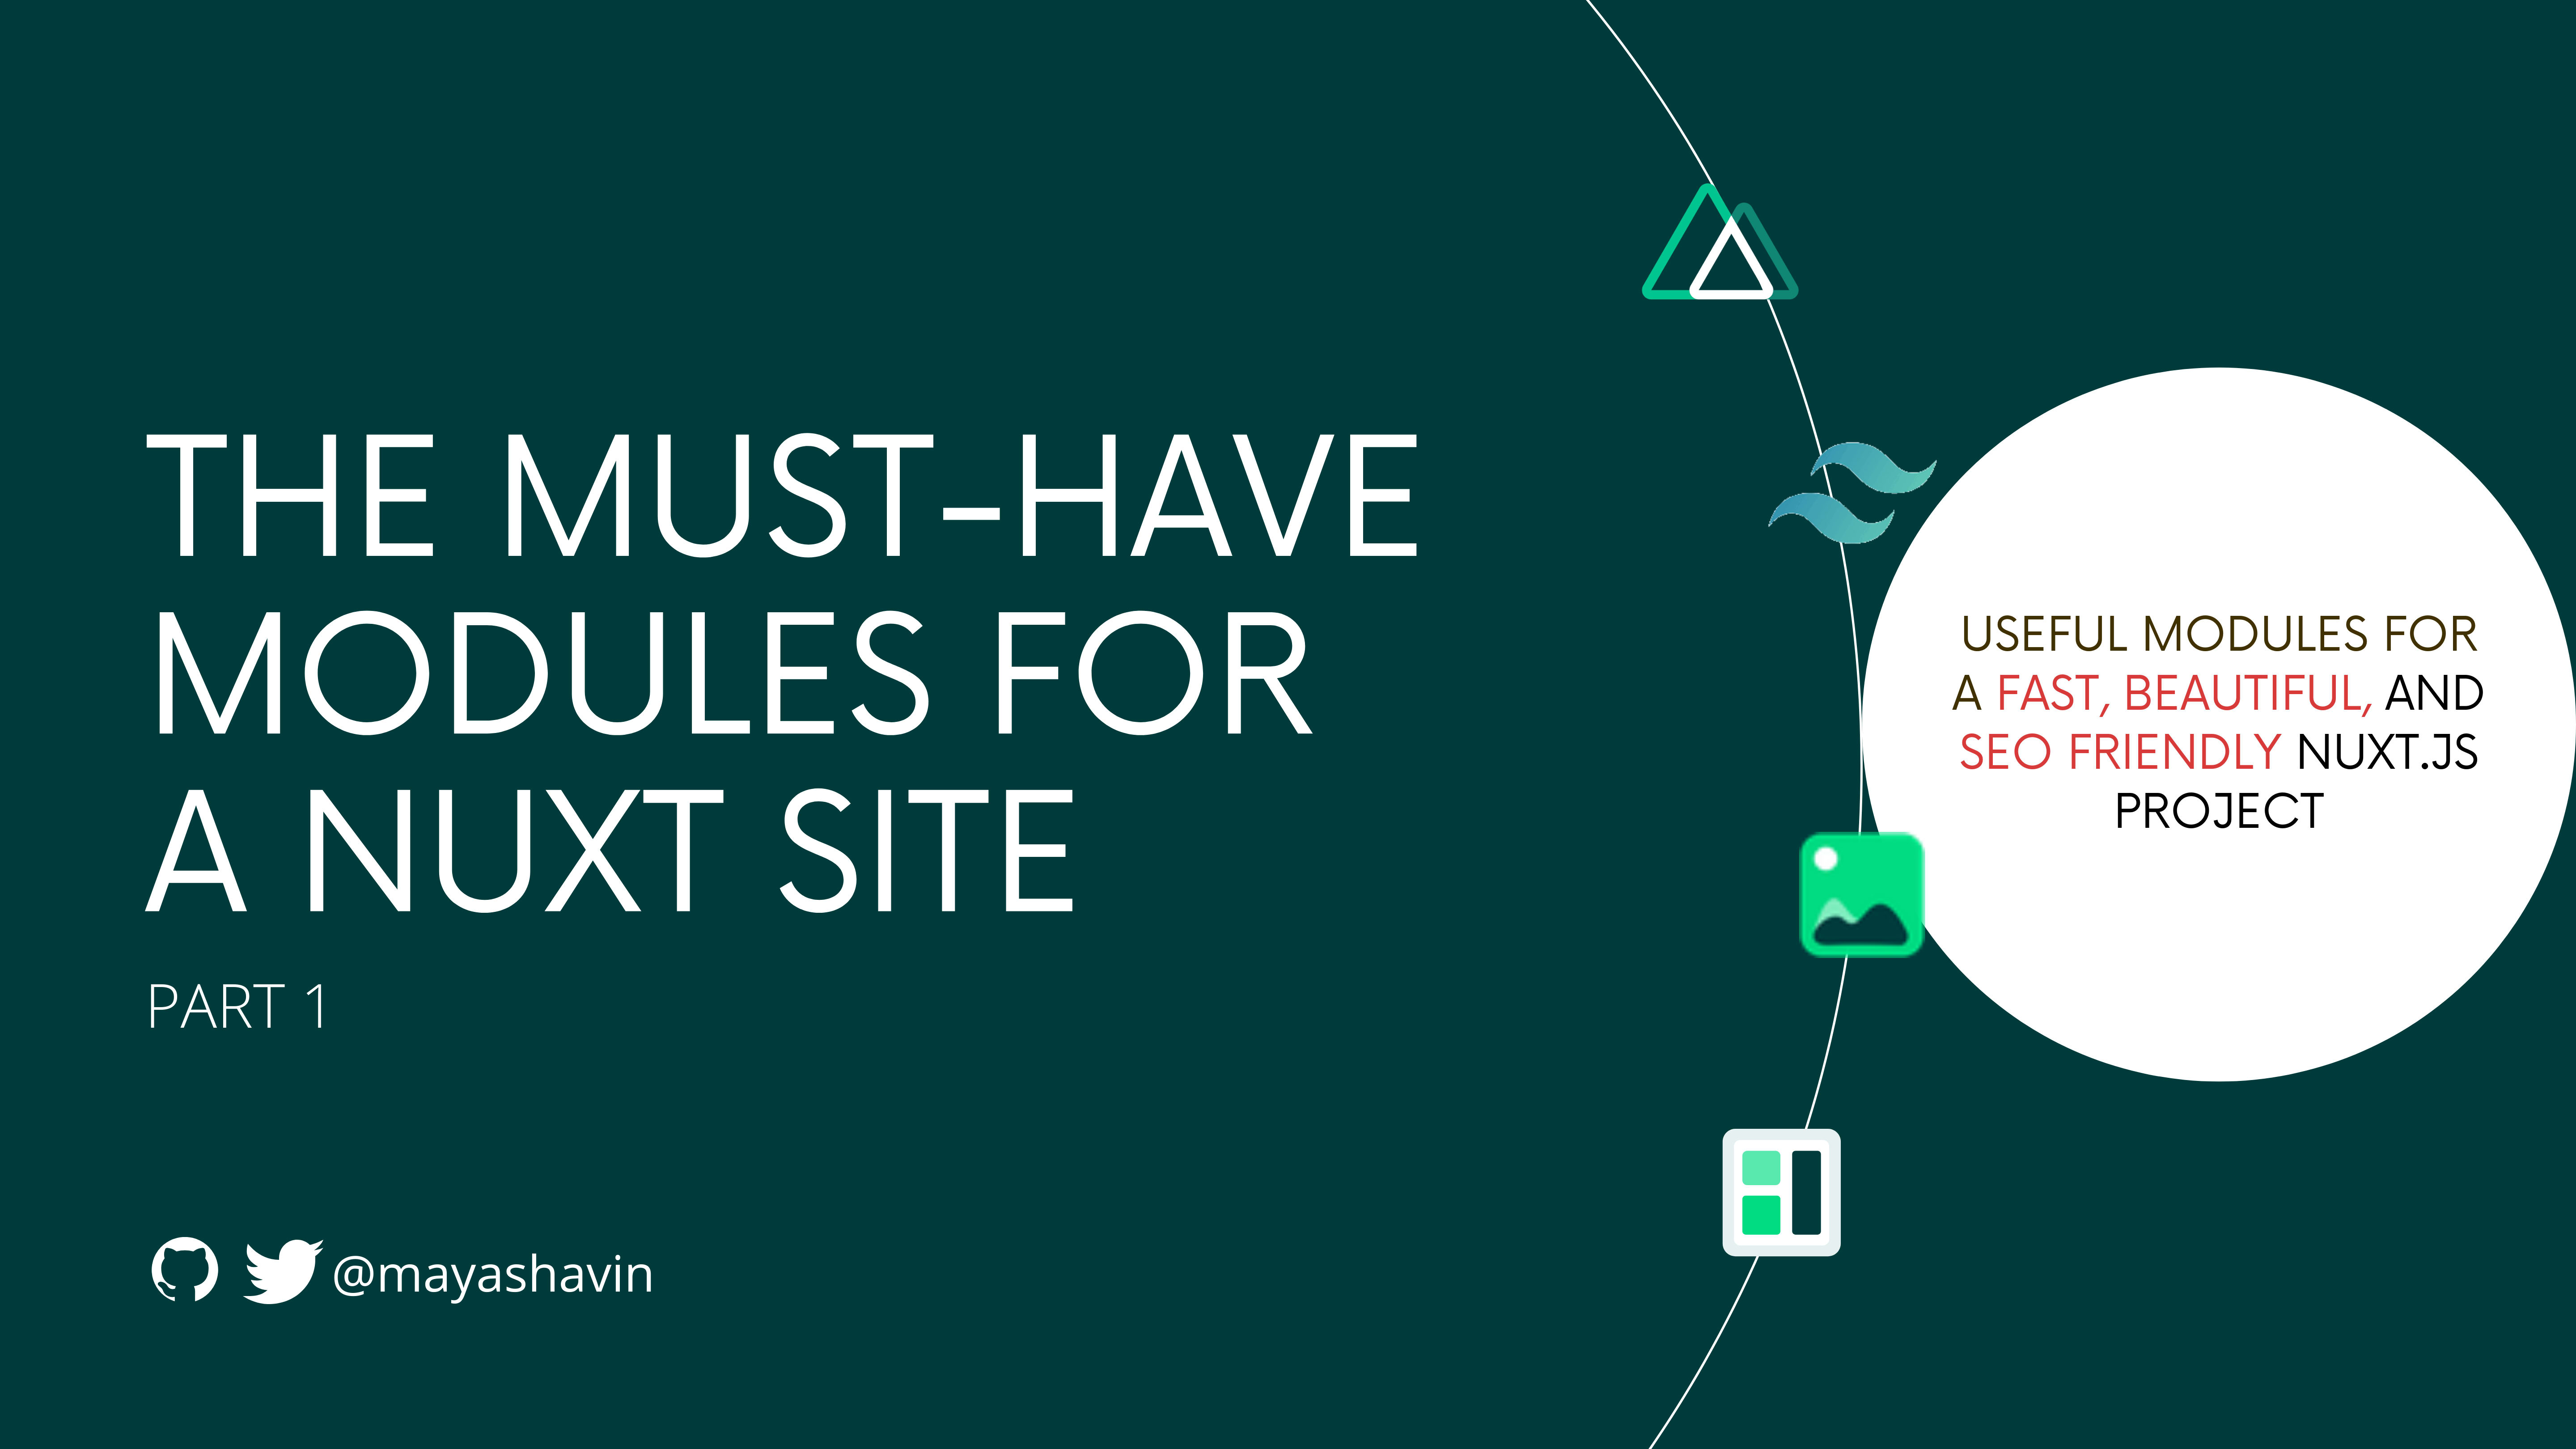 The must-have modules for a Nuxt site (P.1)